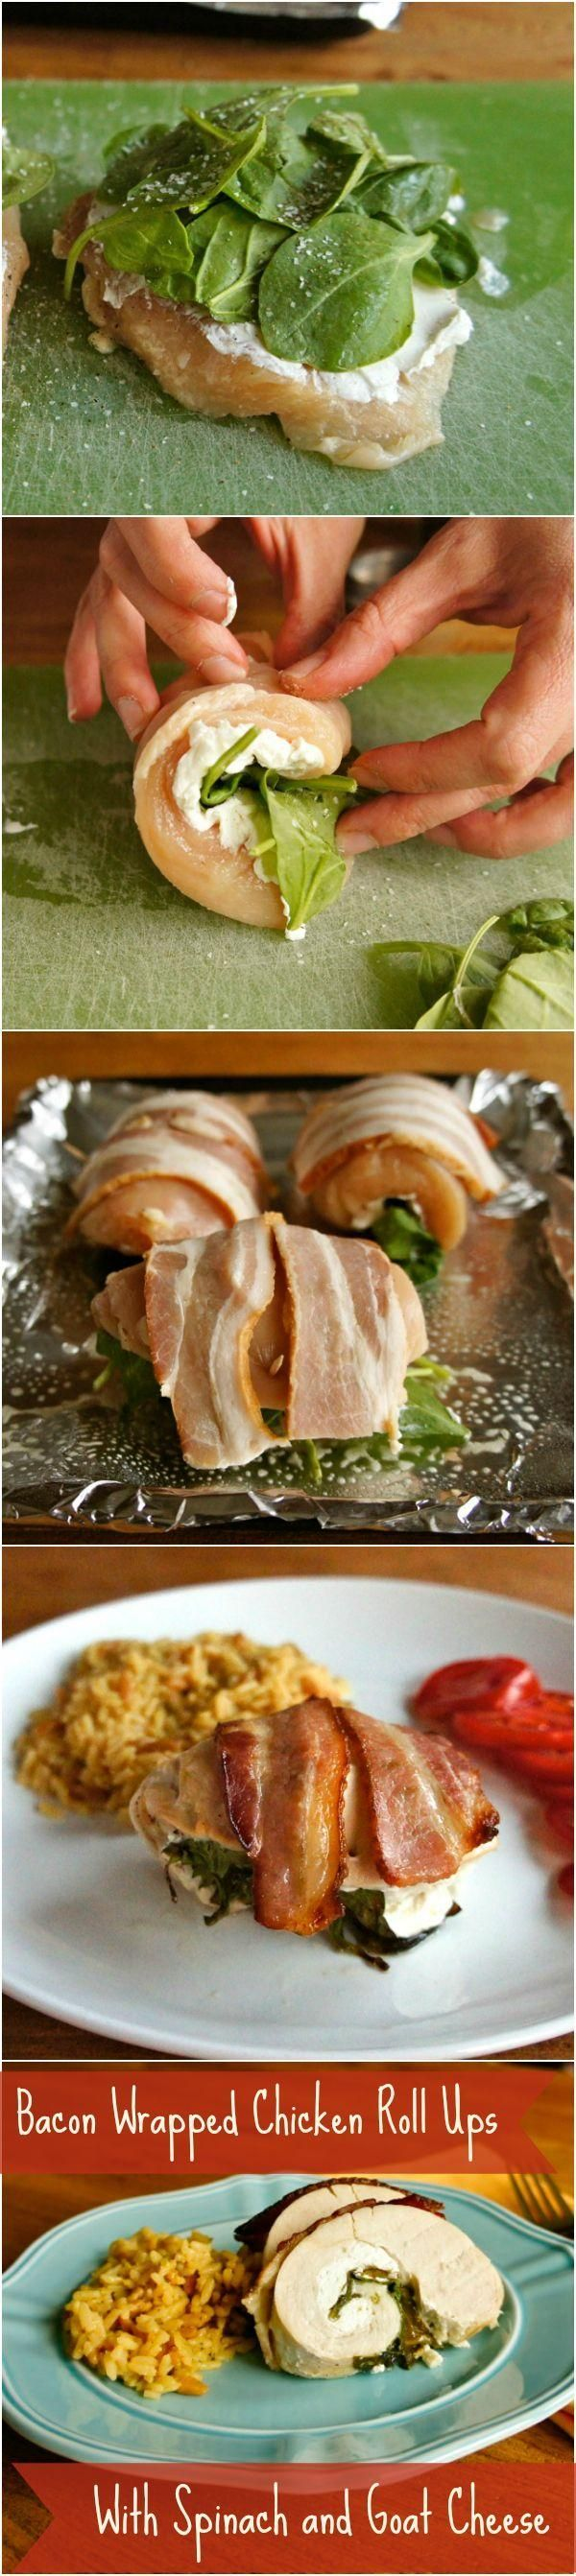 Bacon Wrapped Chicken Roll Ups with Spinach and Goat Cheese - Love ...